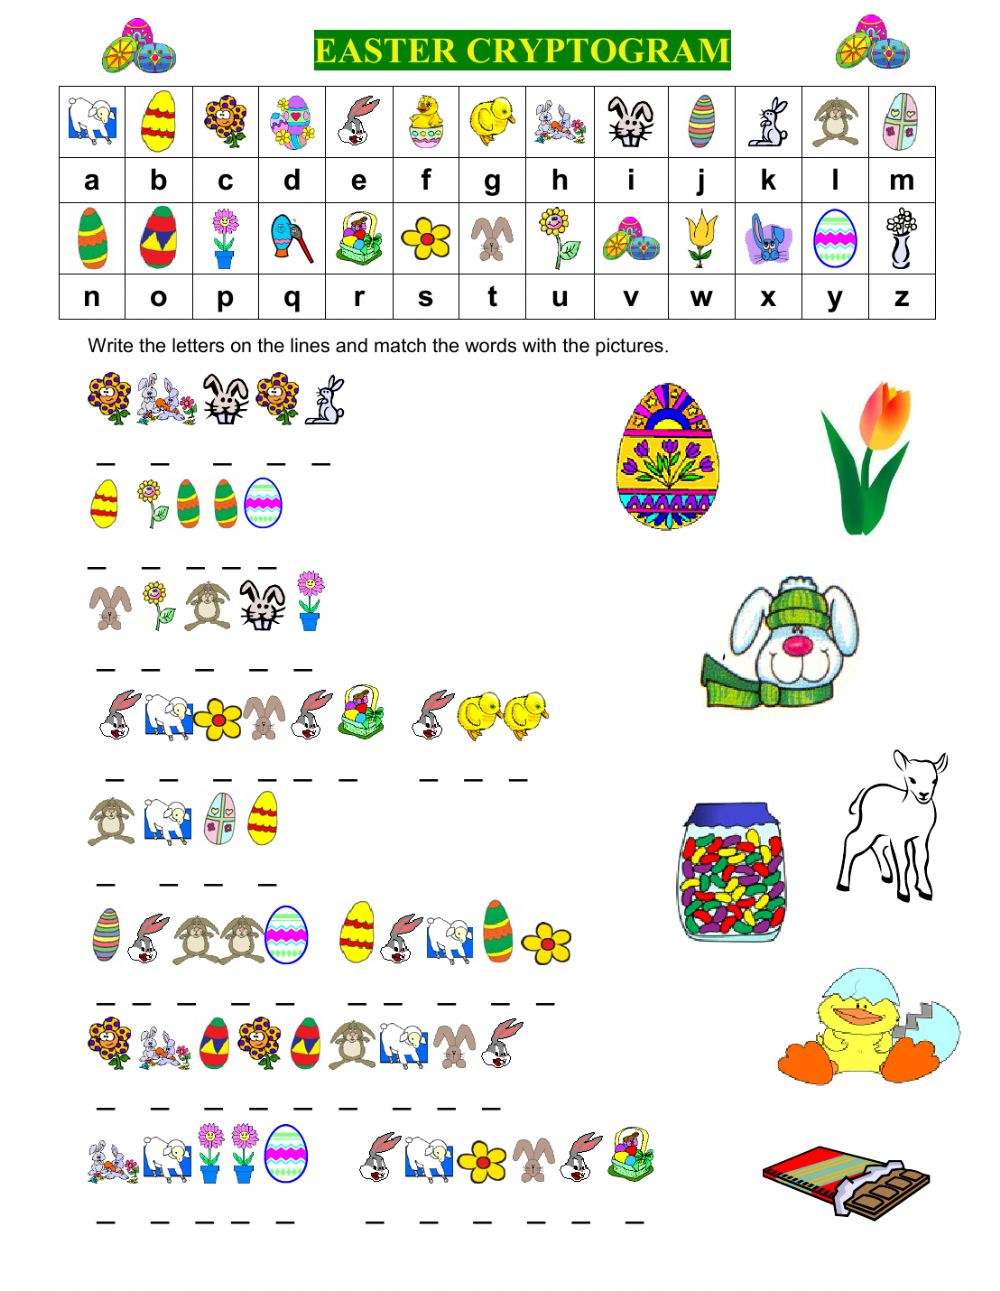 medium resolution of EASTER CRYPTOGRAM worksheet